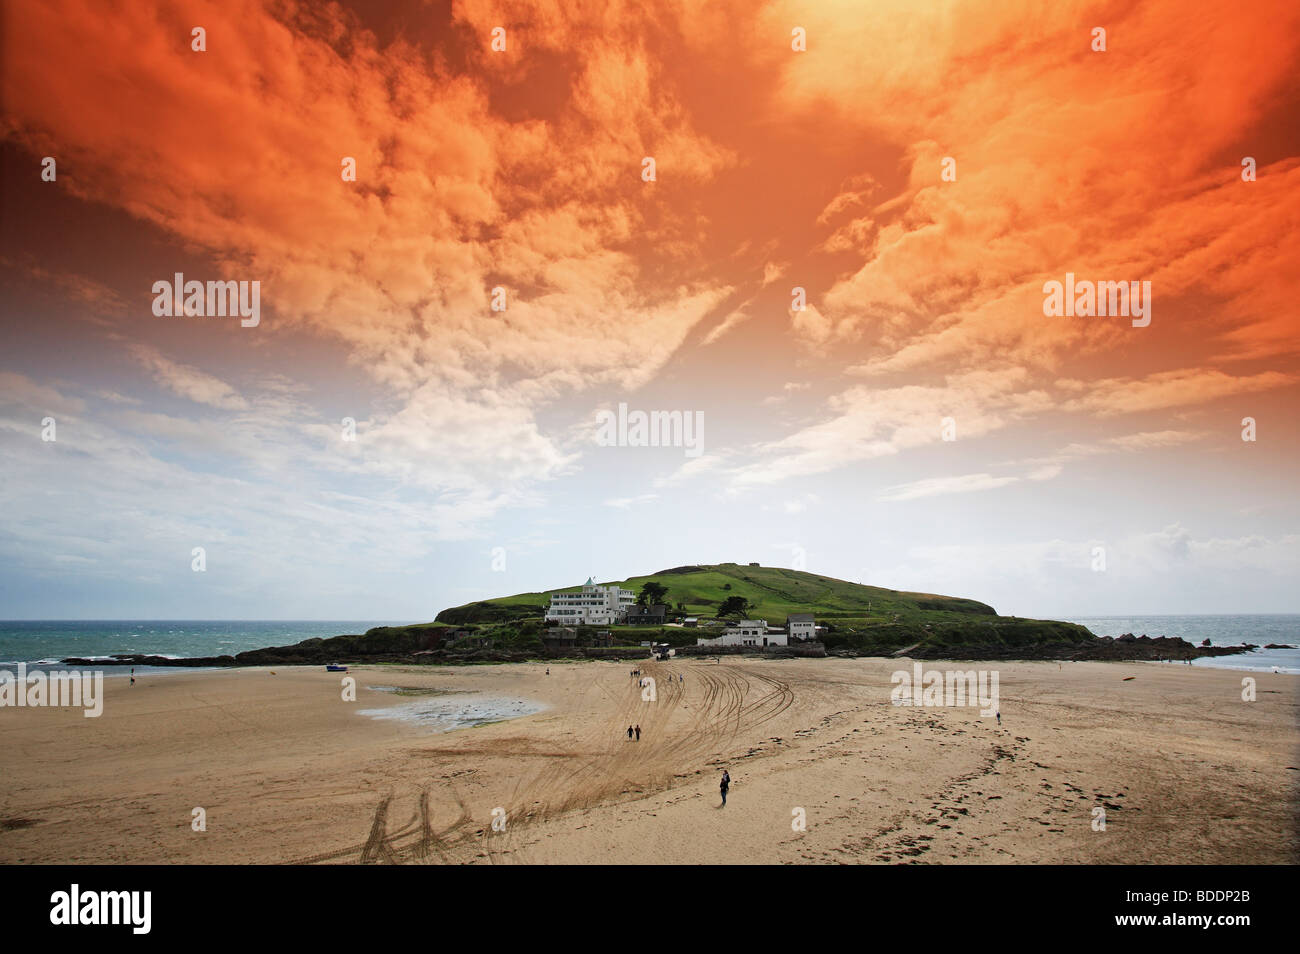 2578. Burgh Island, Bigbury-on-Sea, Devon - Stock Image